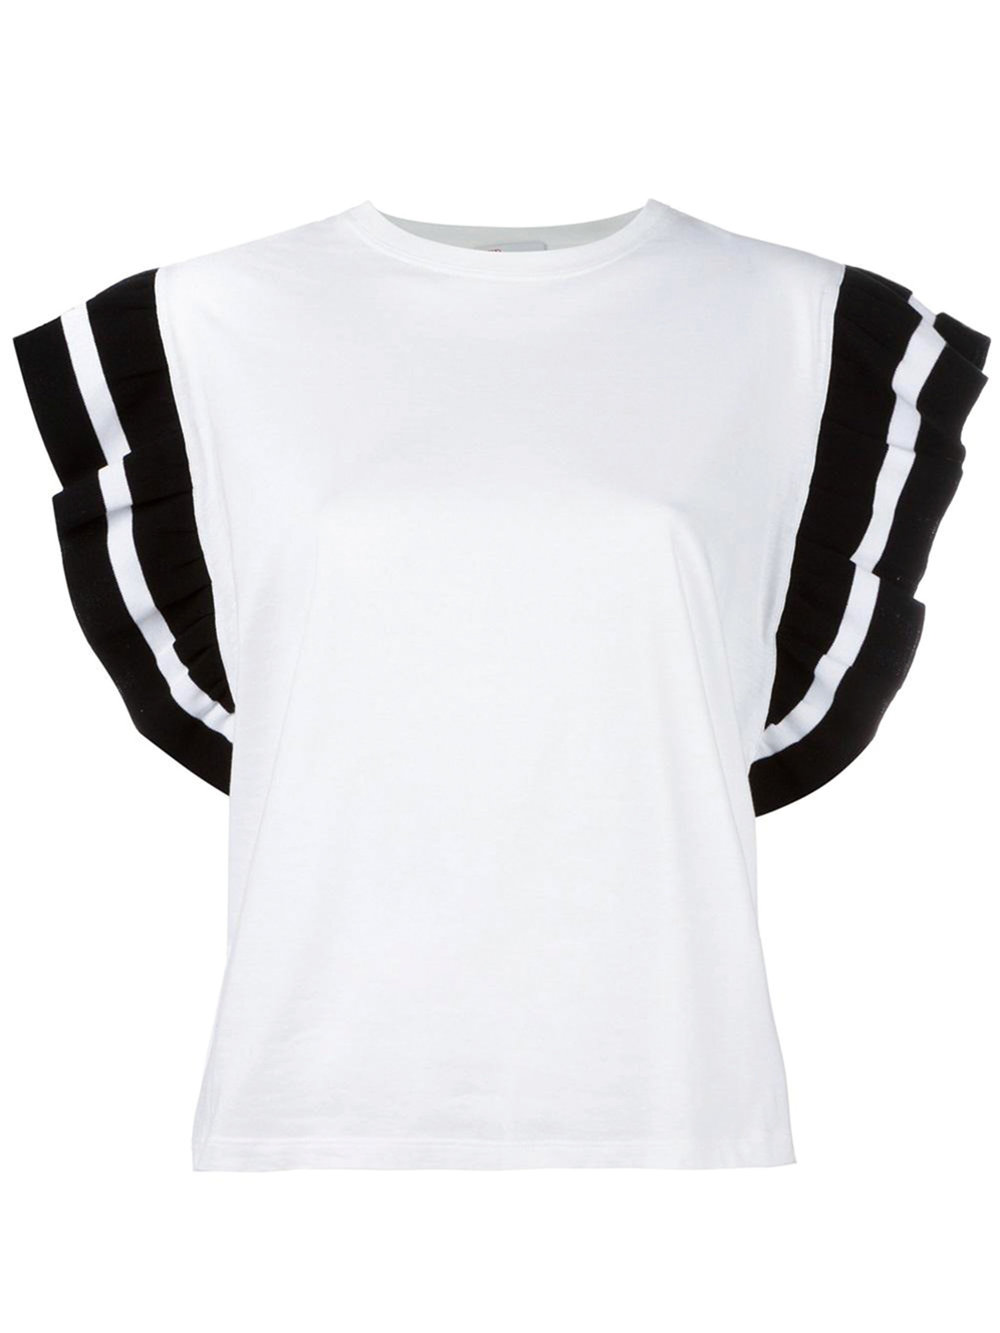 Ruffle Sleeves T-Shirt by Valentino